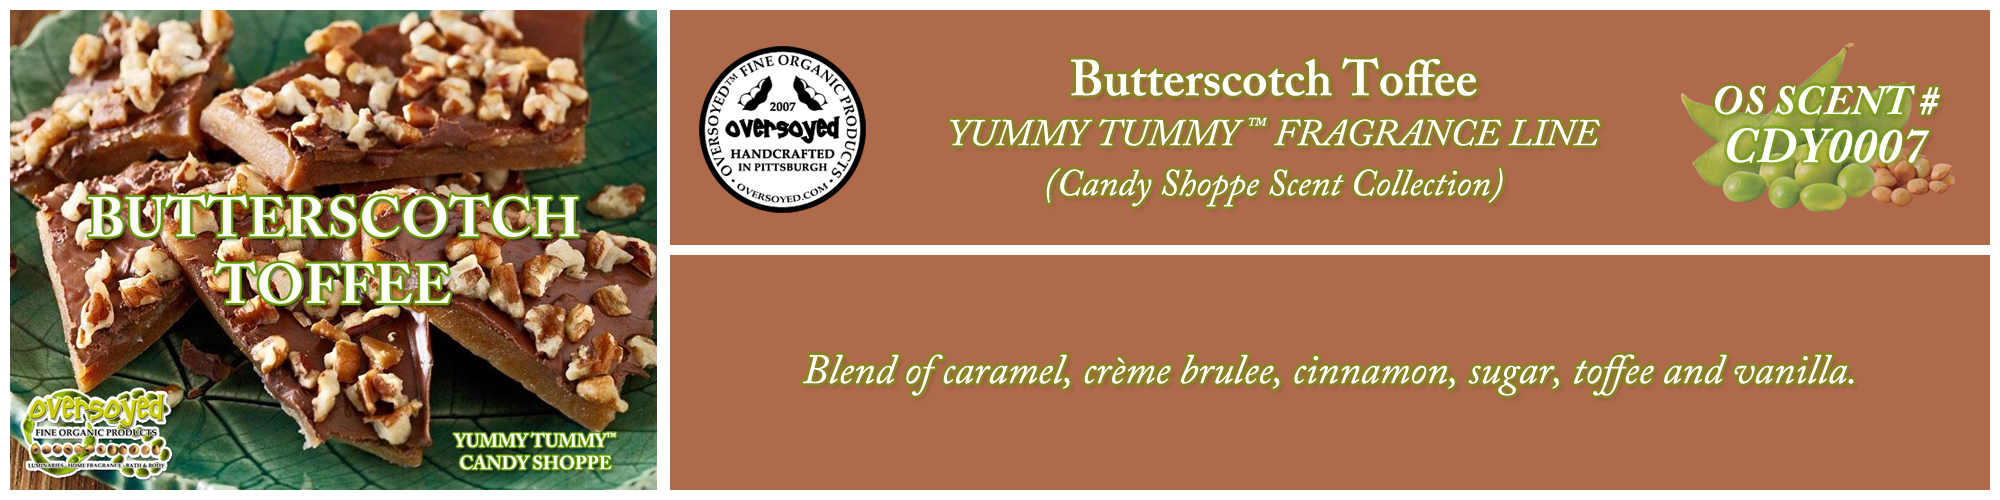 Butterscotch Toffee Handcrafted Products Collection